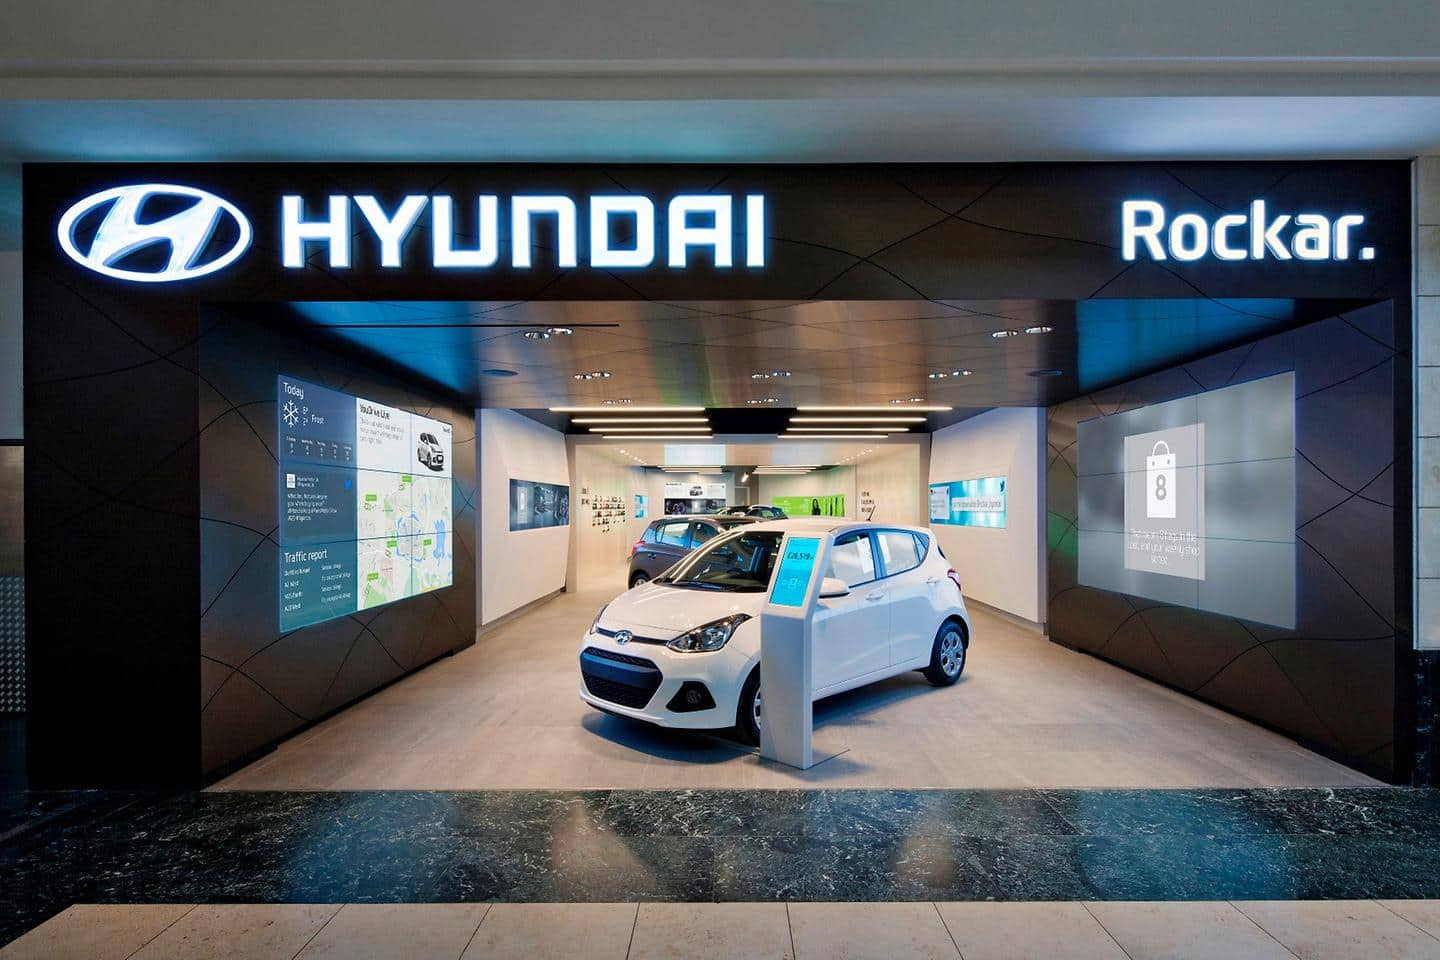 Hyundai Motor And Rockar Lauches a Groundbreaking New Digital Retail Experience